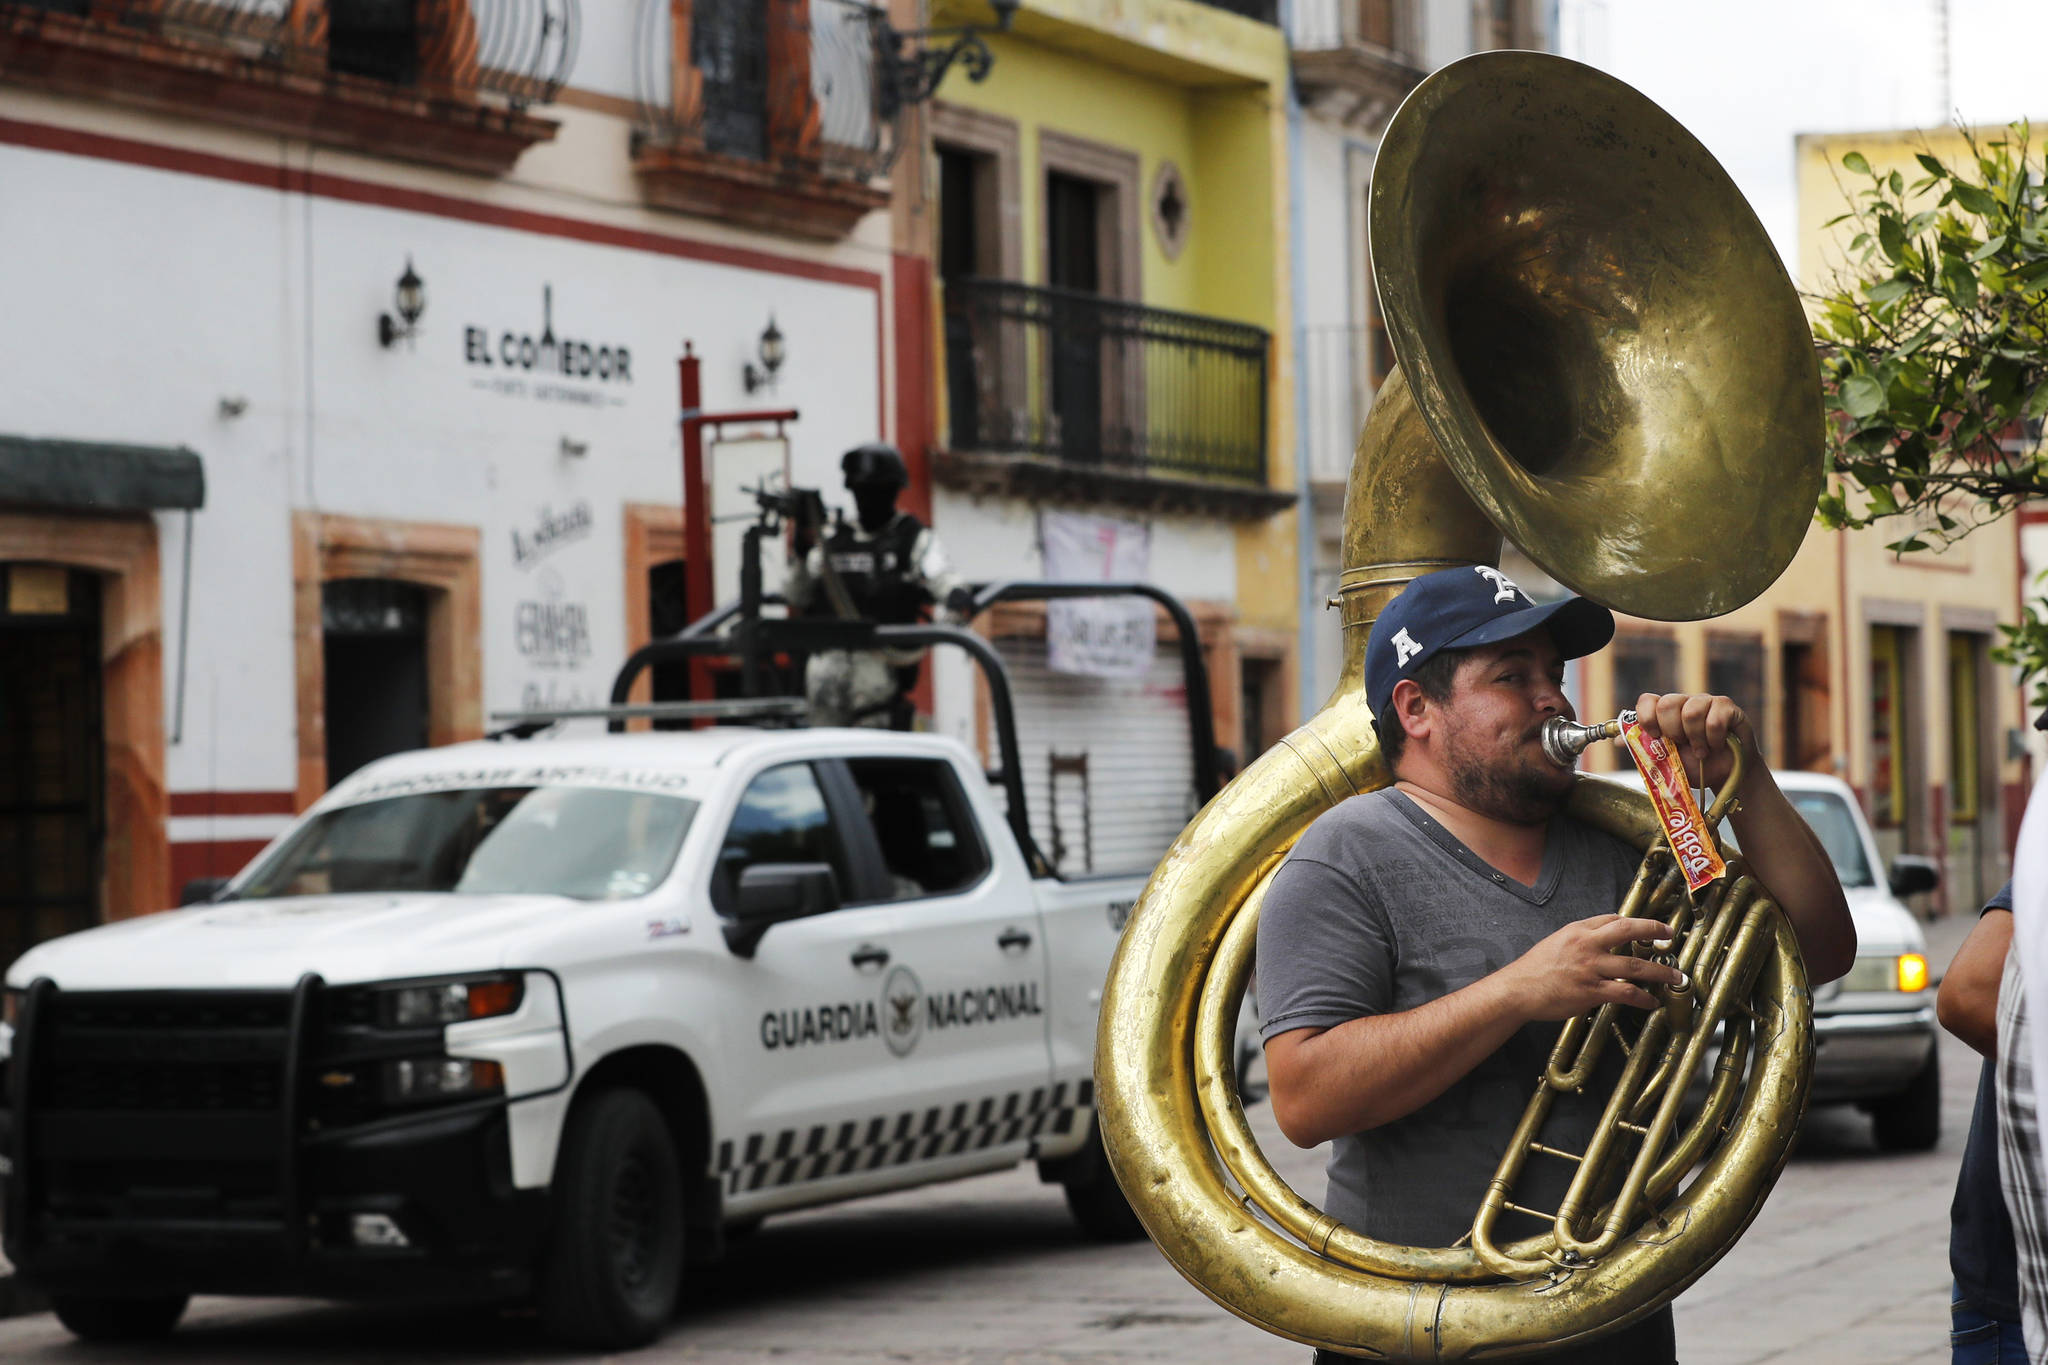 A man plays the tuba as the National Guard patrols downtown Jerez, Zacatecas state, Mexico, Friday, July 16, 2021. For years, much of Mexico's violence was focused along its northern border in cities like Tijuana, Ciudad Juarez and Nuevo Laredo. Now Zacatecas, including in the state capital of the same name, awaken everyday to the violence. (AP Photo/Marco Ugarte)